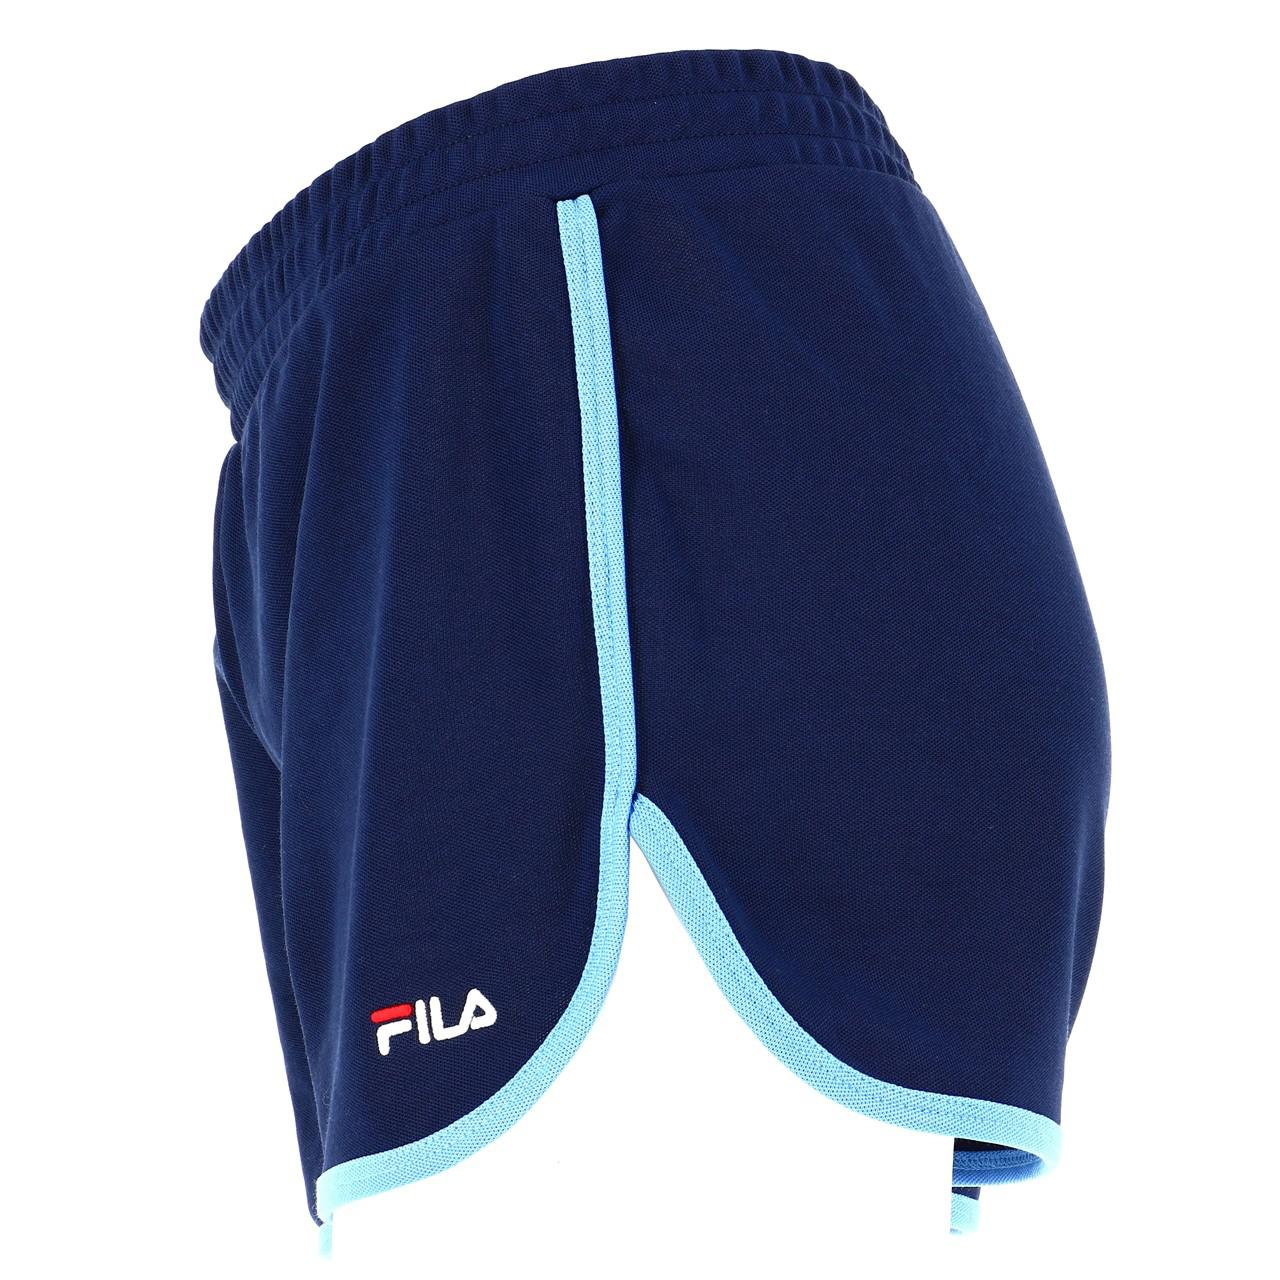 Bermuda-Shorts-Fila-Paige-Shorts-Vintage-W-Blue-45218-New thumbnail 2